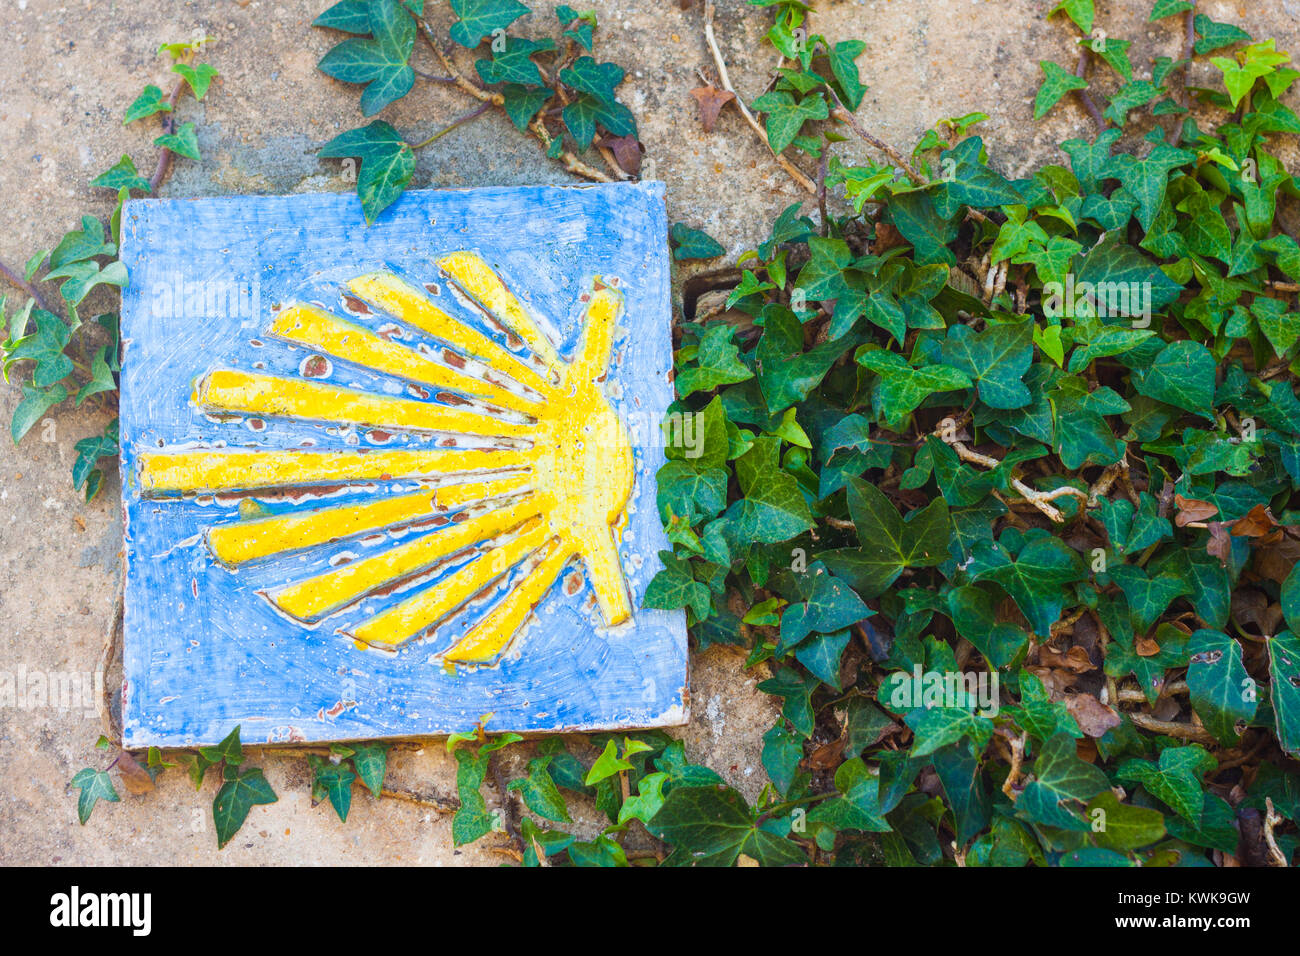 Camino de Santiago, or Way of Saint James, shell sign on the stone wall with ivy leaves - Stock Image